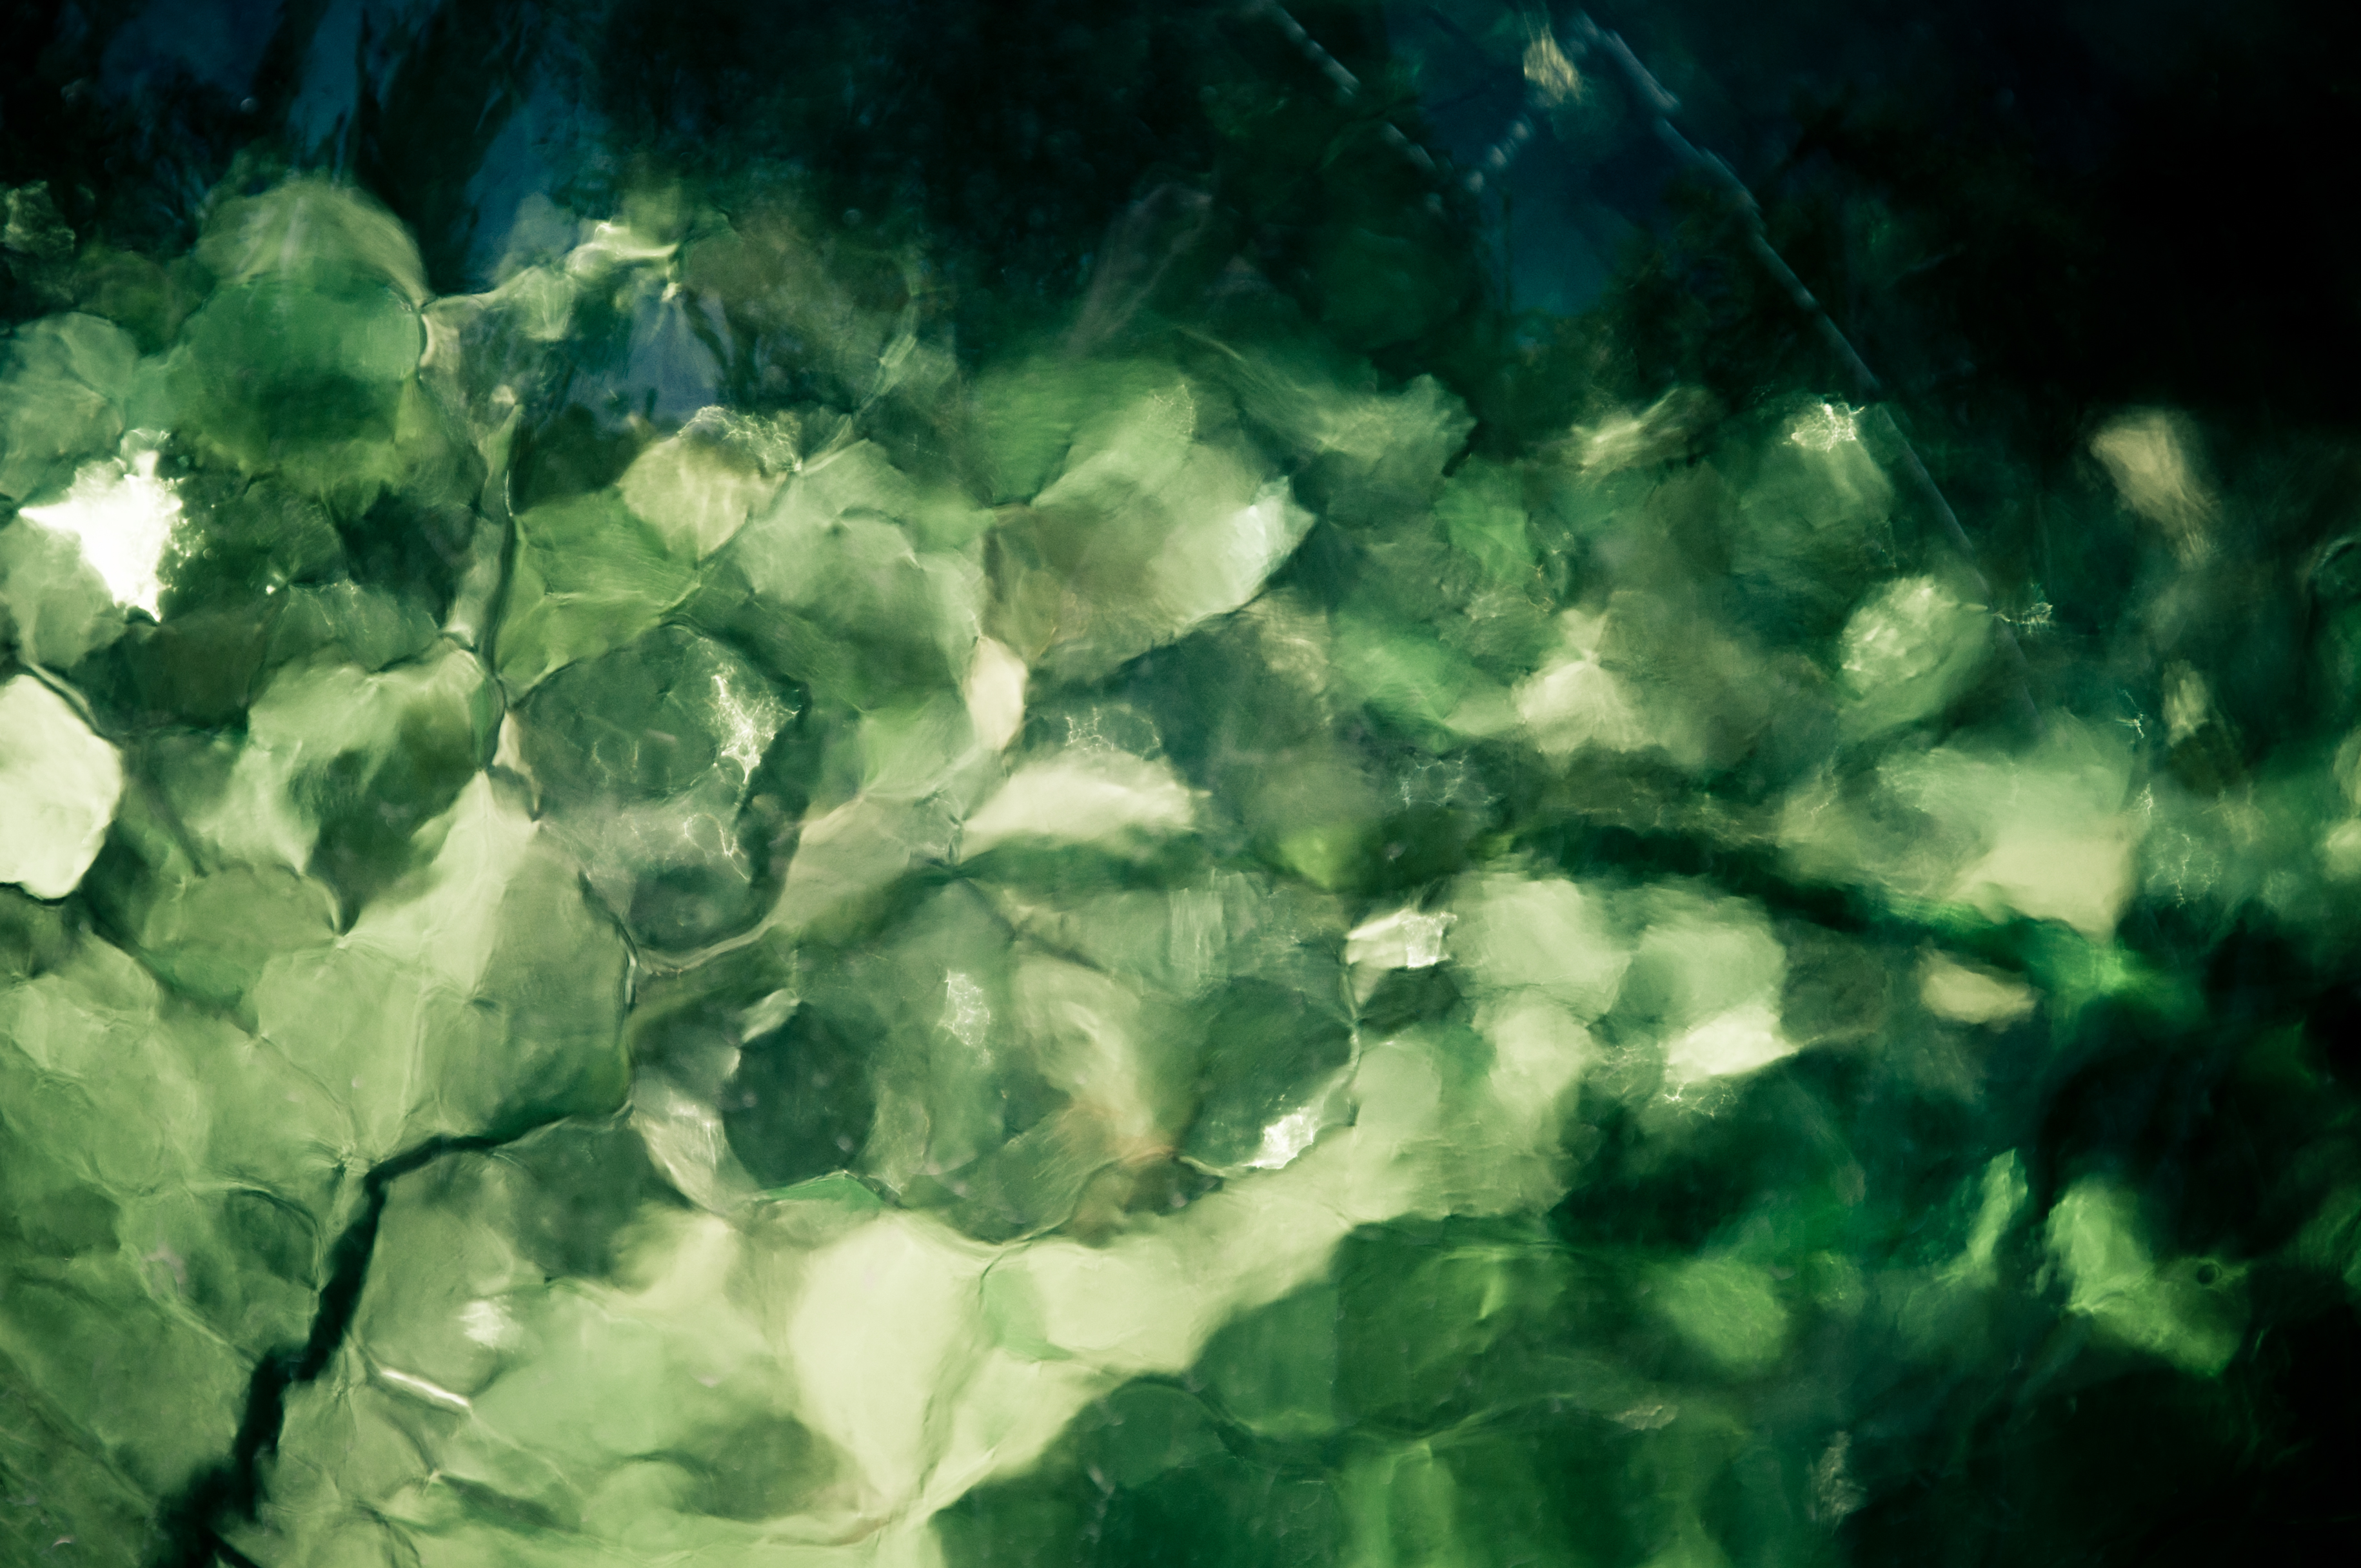 abstract glass texture, Abstract, Shiny, Mineral, Moving, HQ Photo